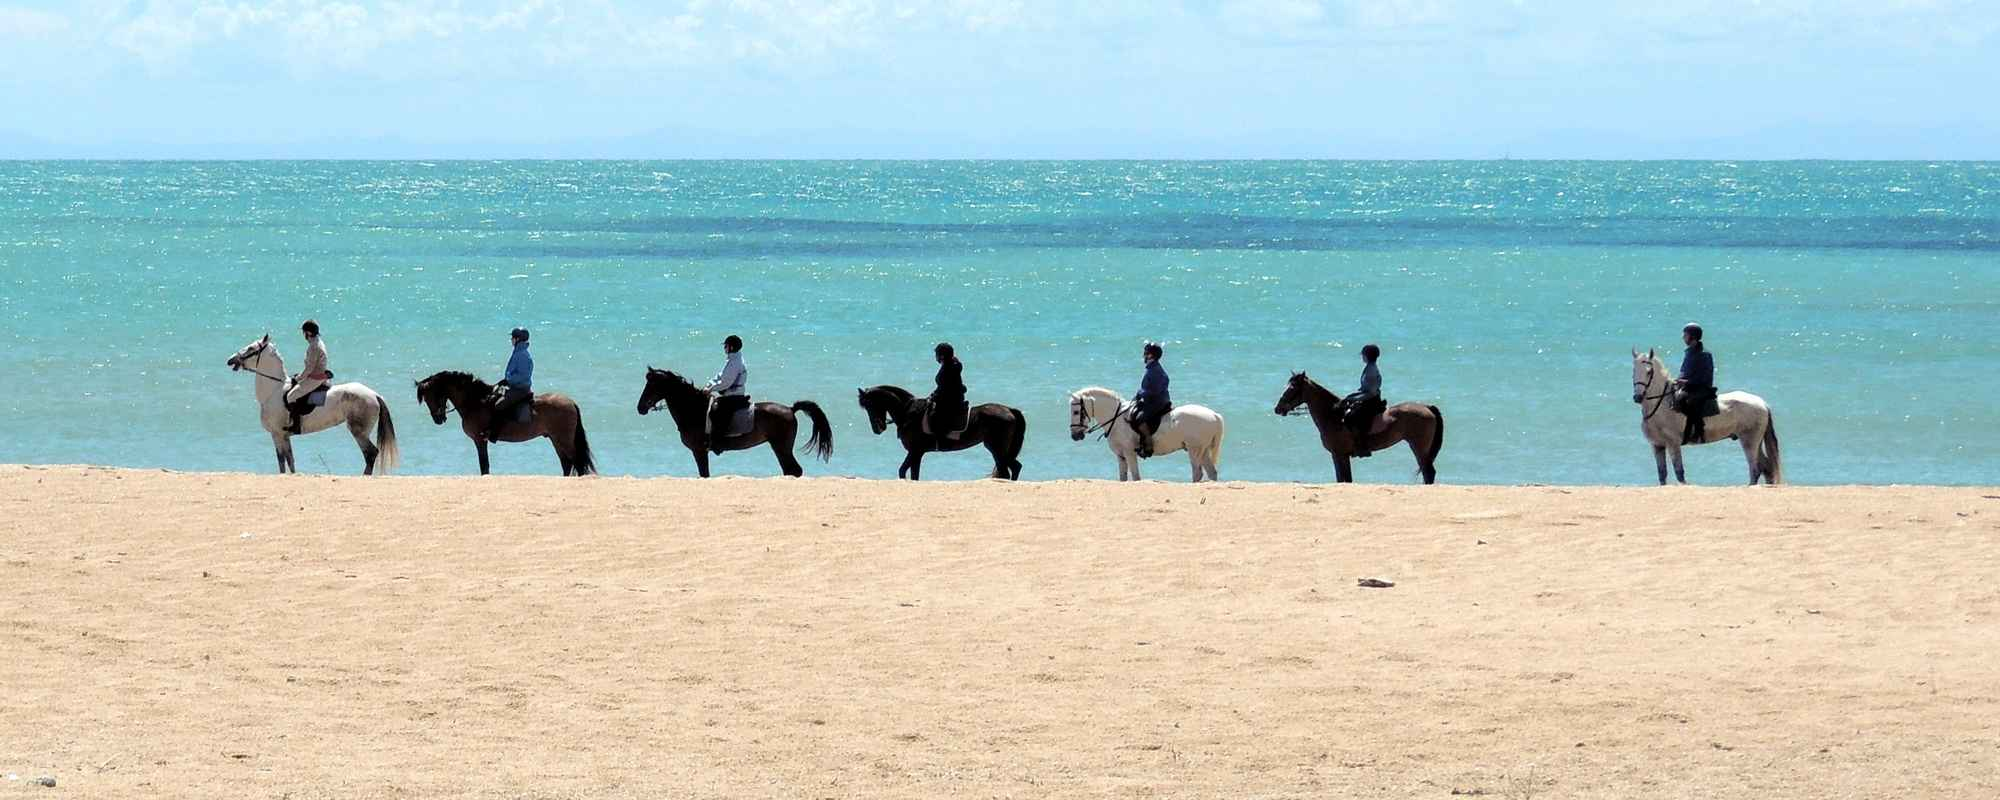 Luxury horse riding holiday in unspoilt Andalusia.